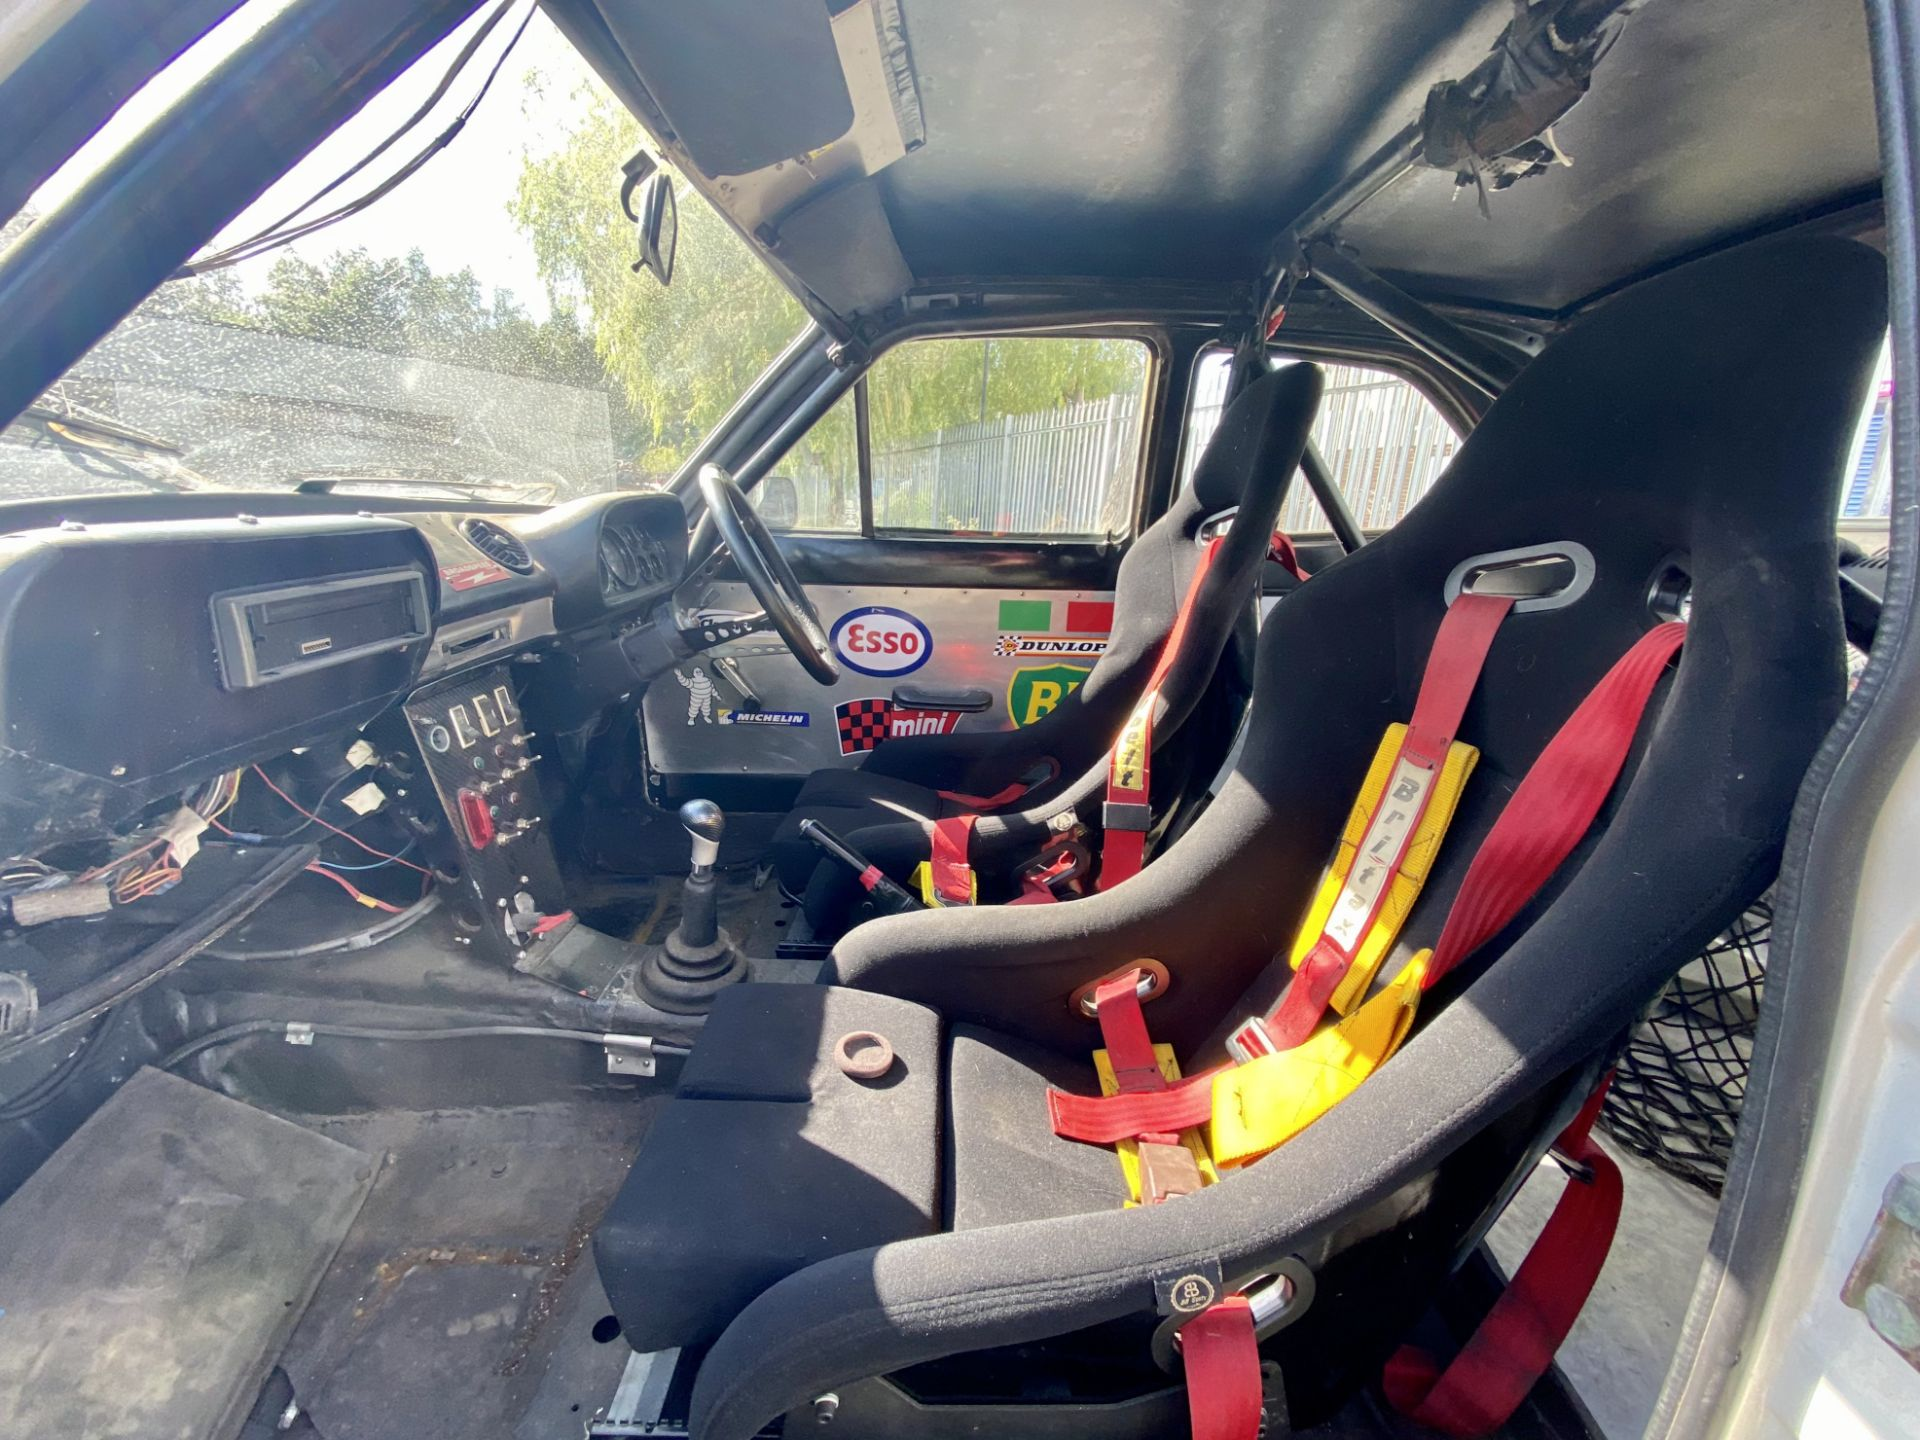 Ford Escort Mexico - Image 13 of 51